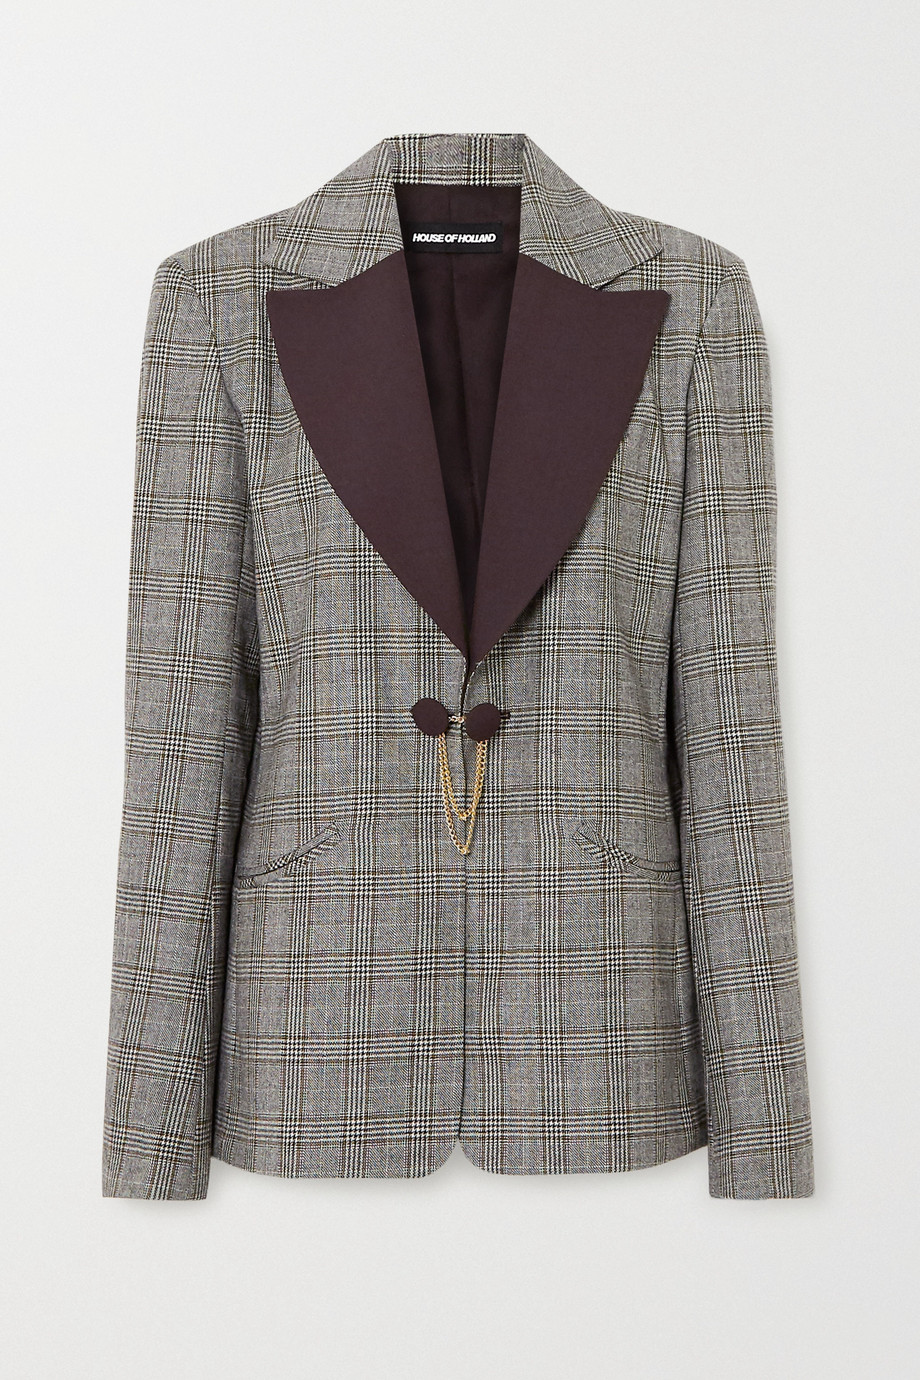 House of Holland Chain-embellished Prince of Wales checked wool blazer